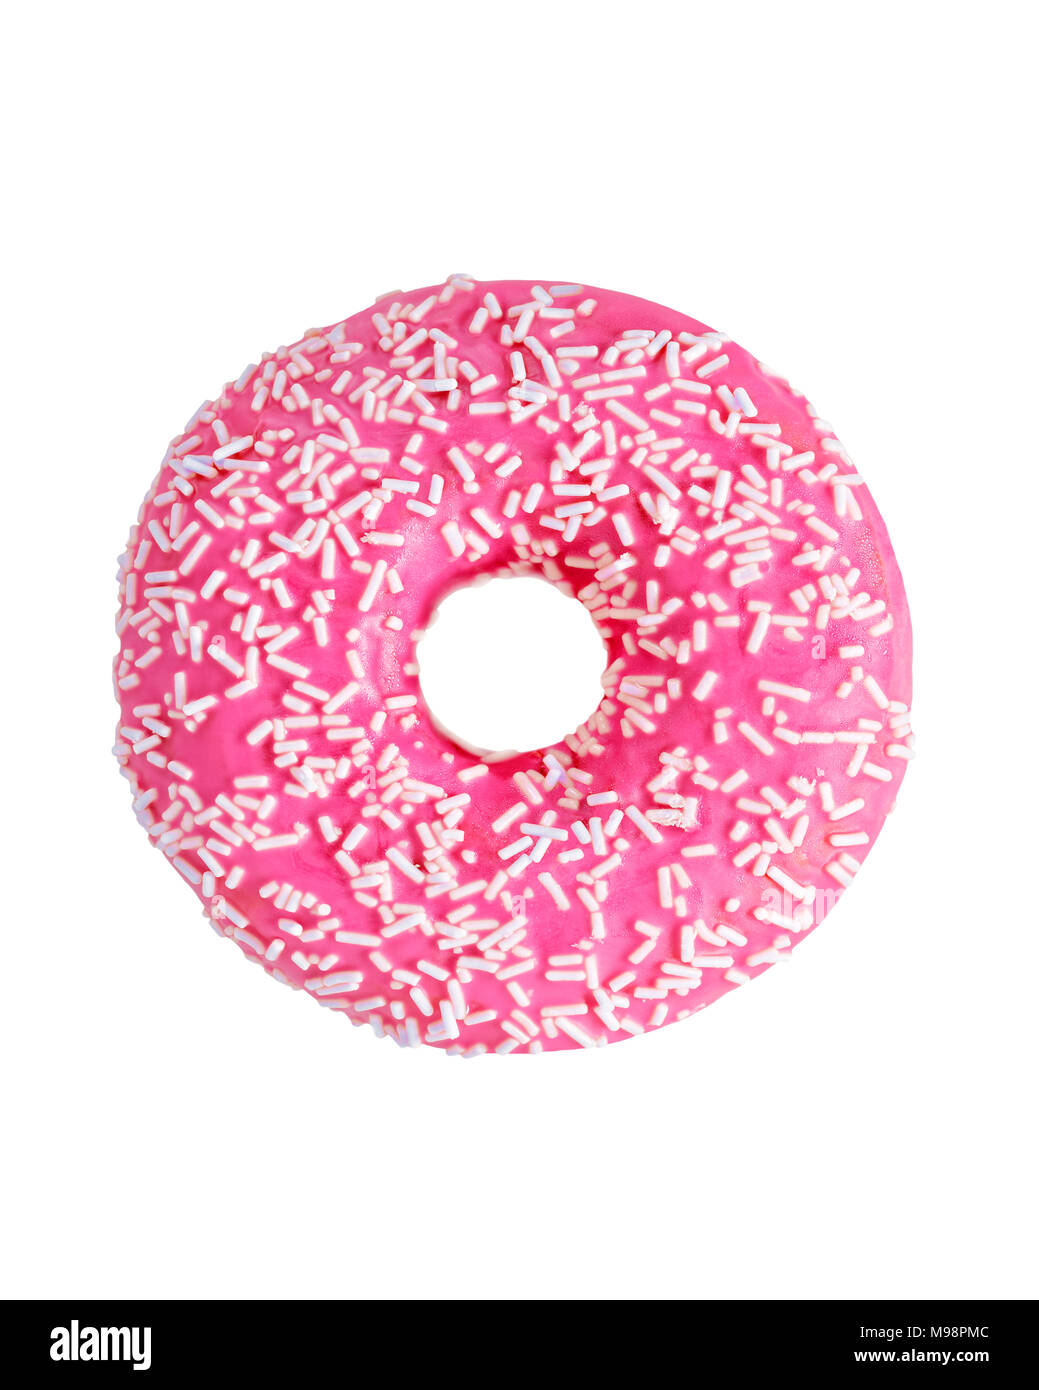 Doughnut Covered with Pink Icing, Cut Out - Stock Image